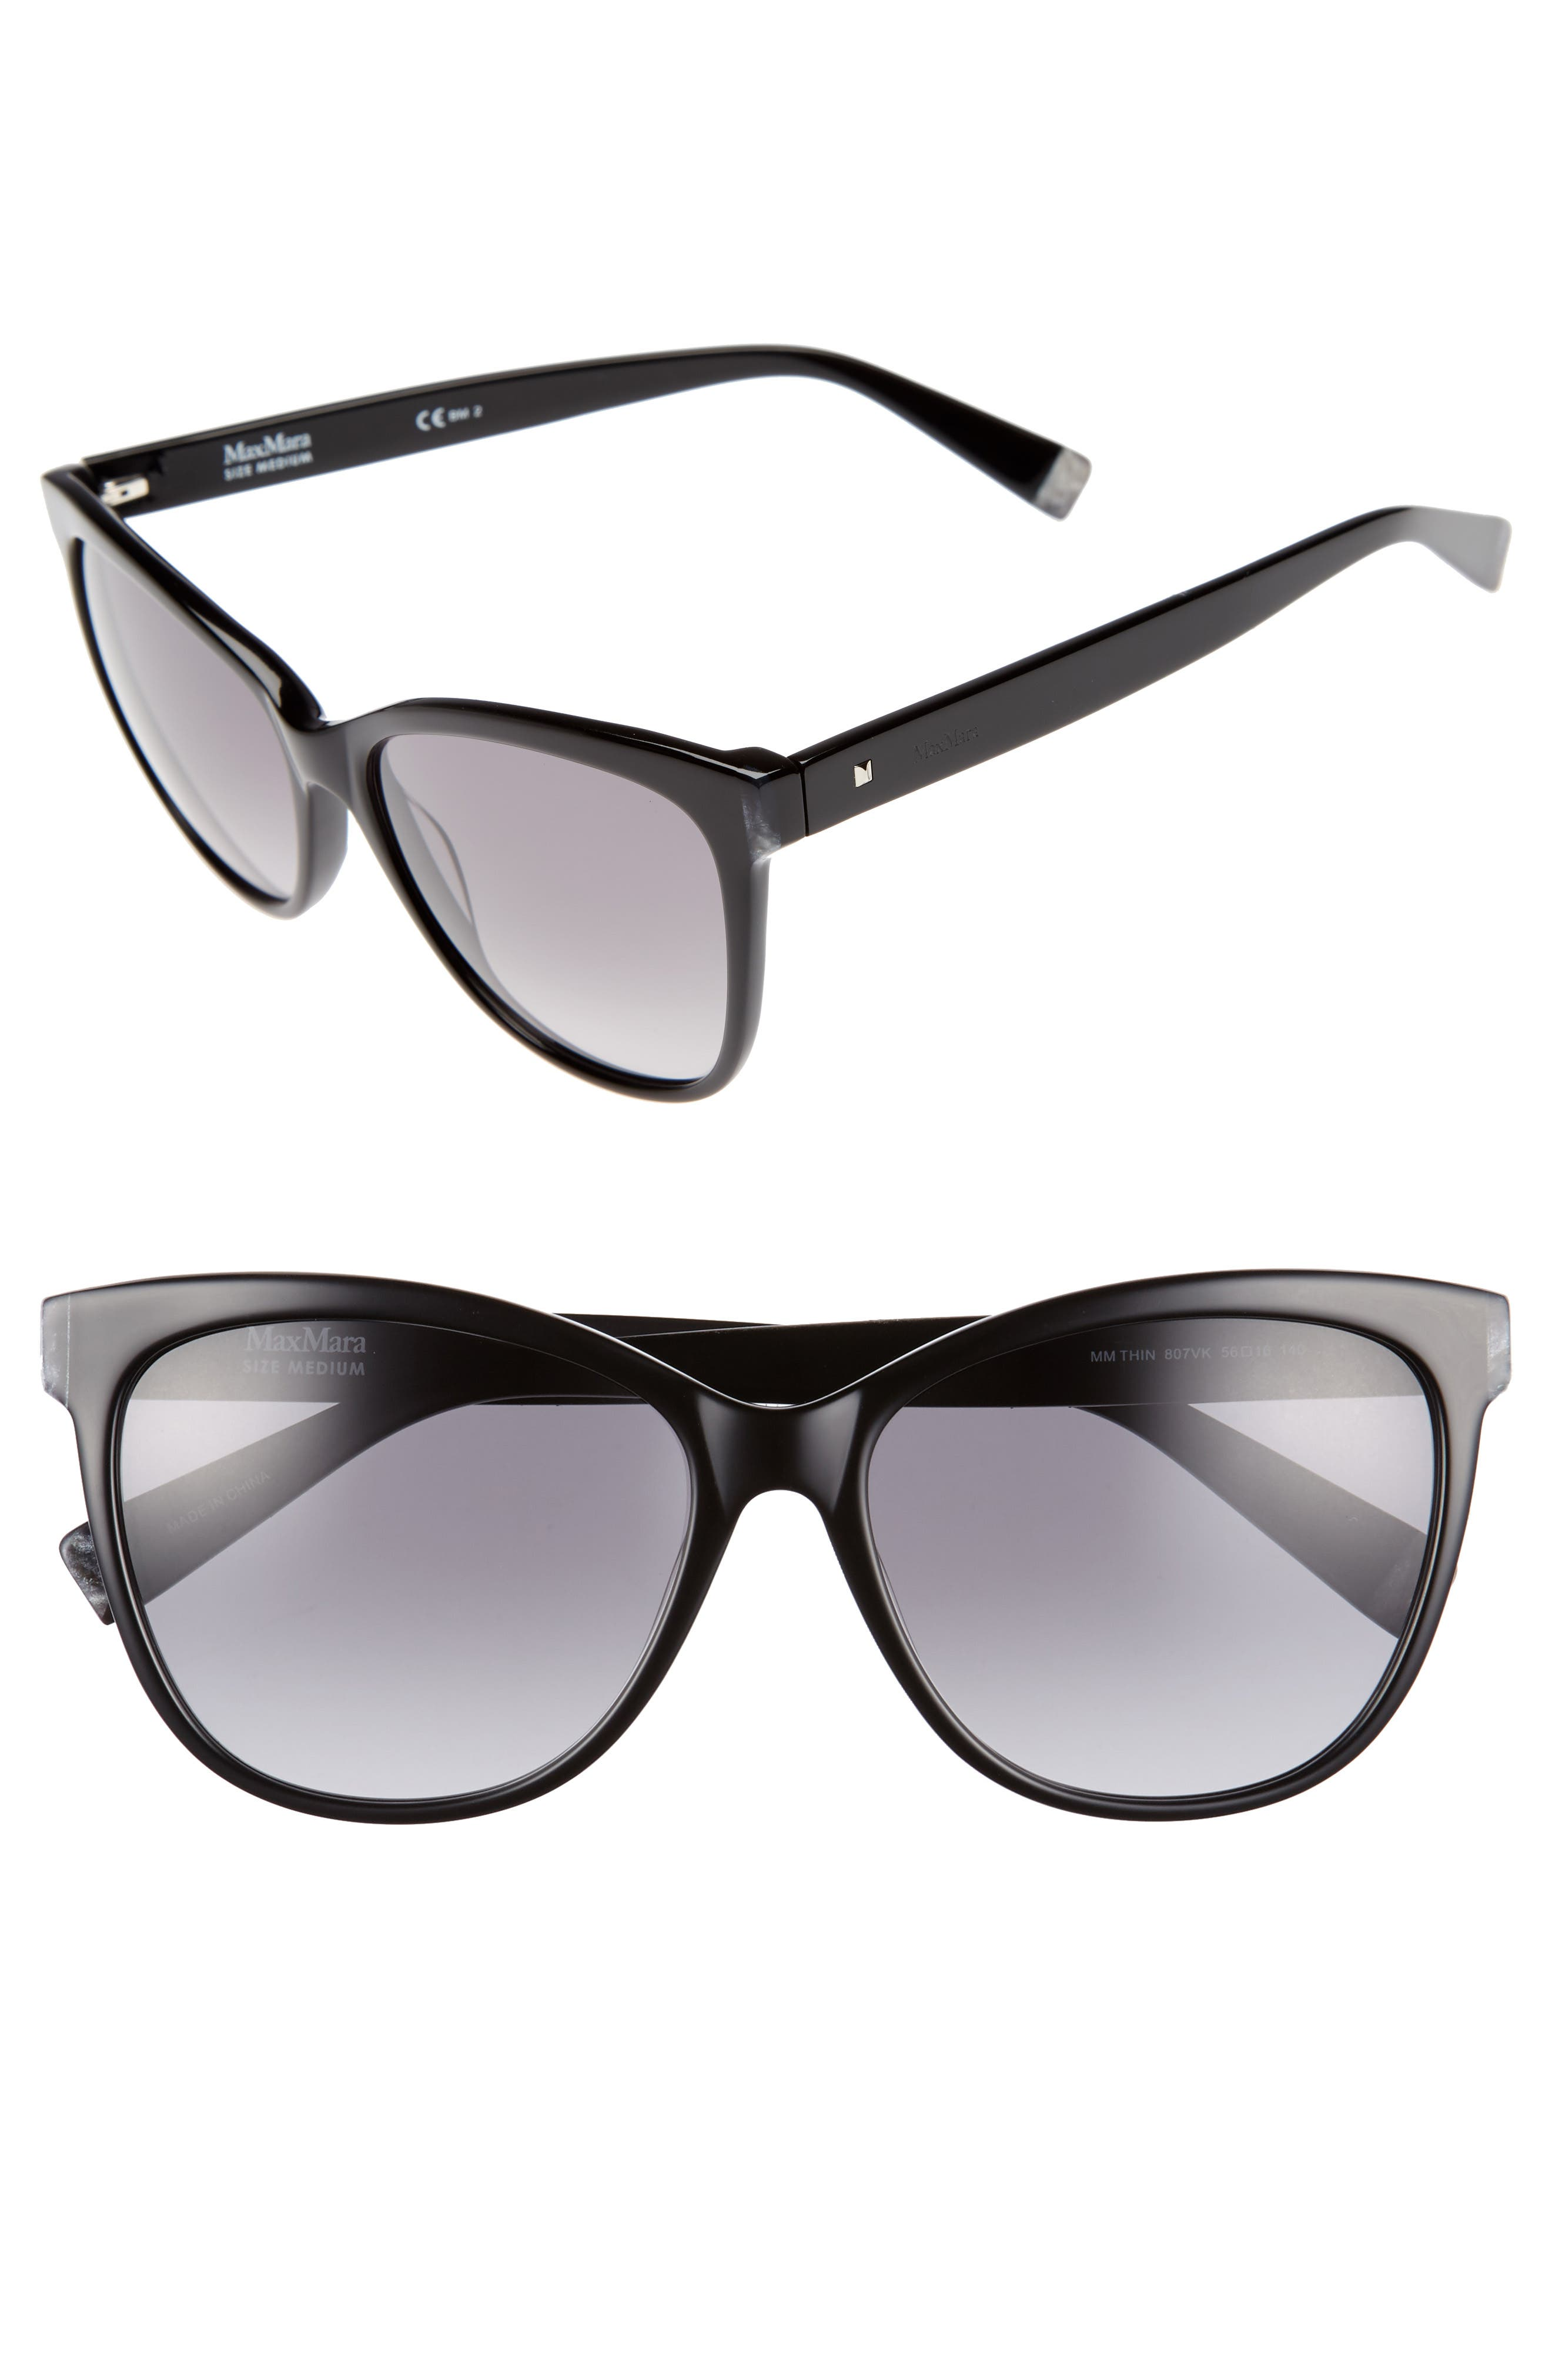 Thins 56mm Gradient Cat Eye Sunglasses,                         Main,                         color, Black